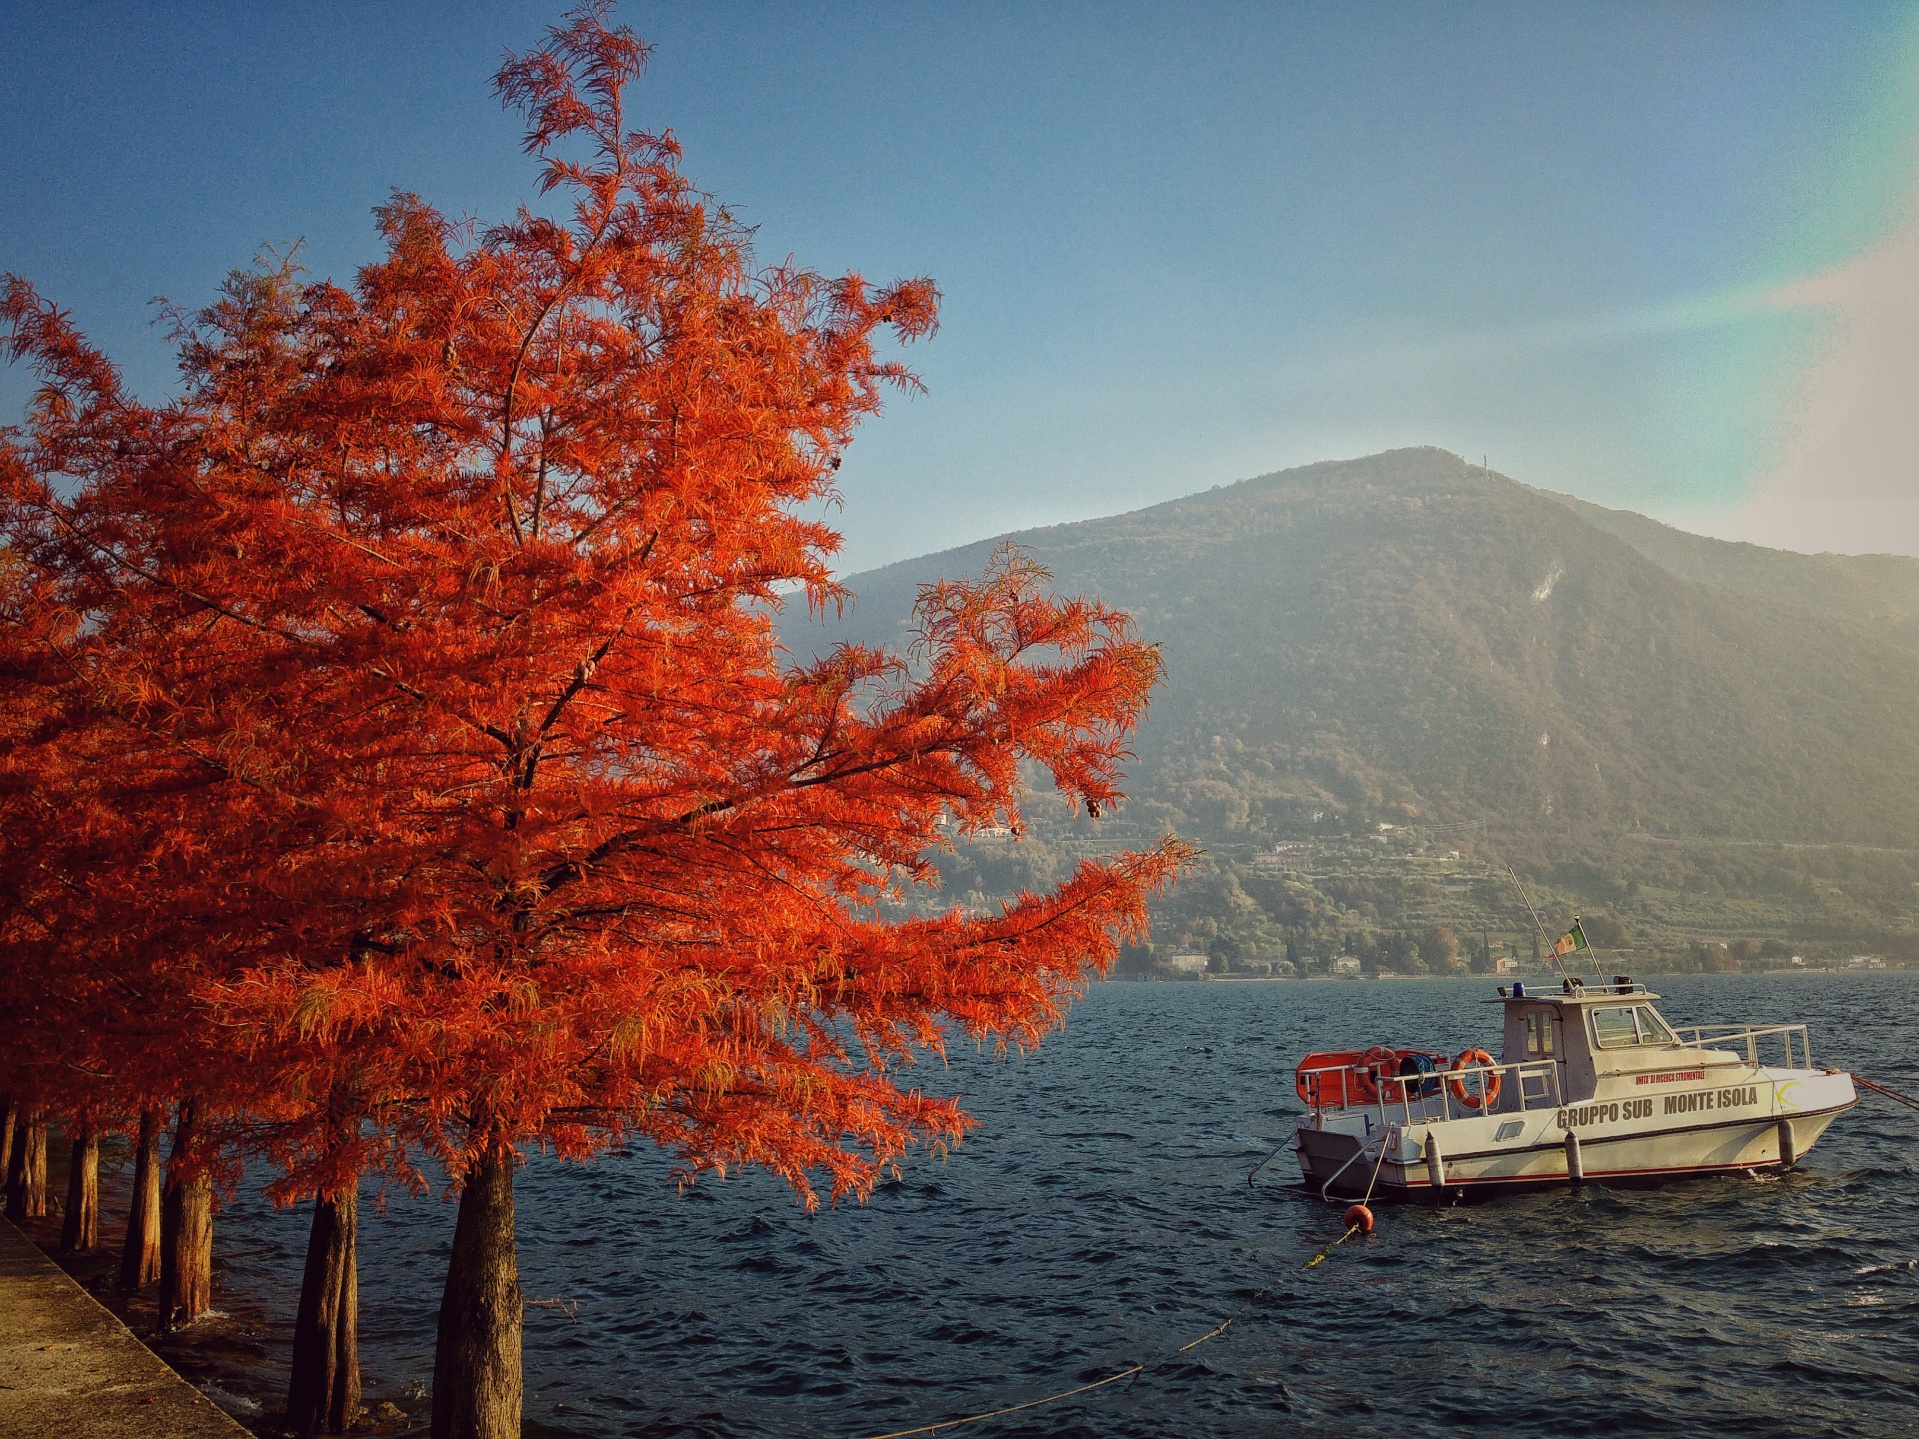 Monte Isola, Lago d'Iseo, Weekend d'autunno